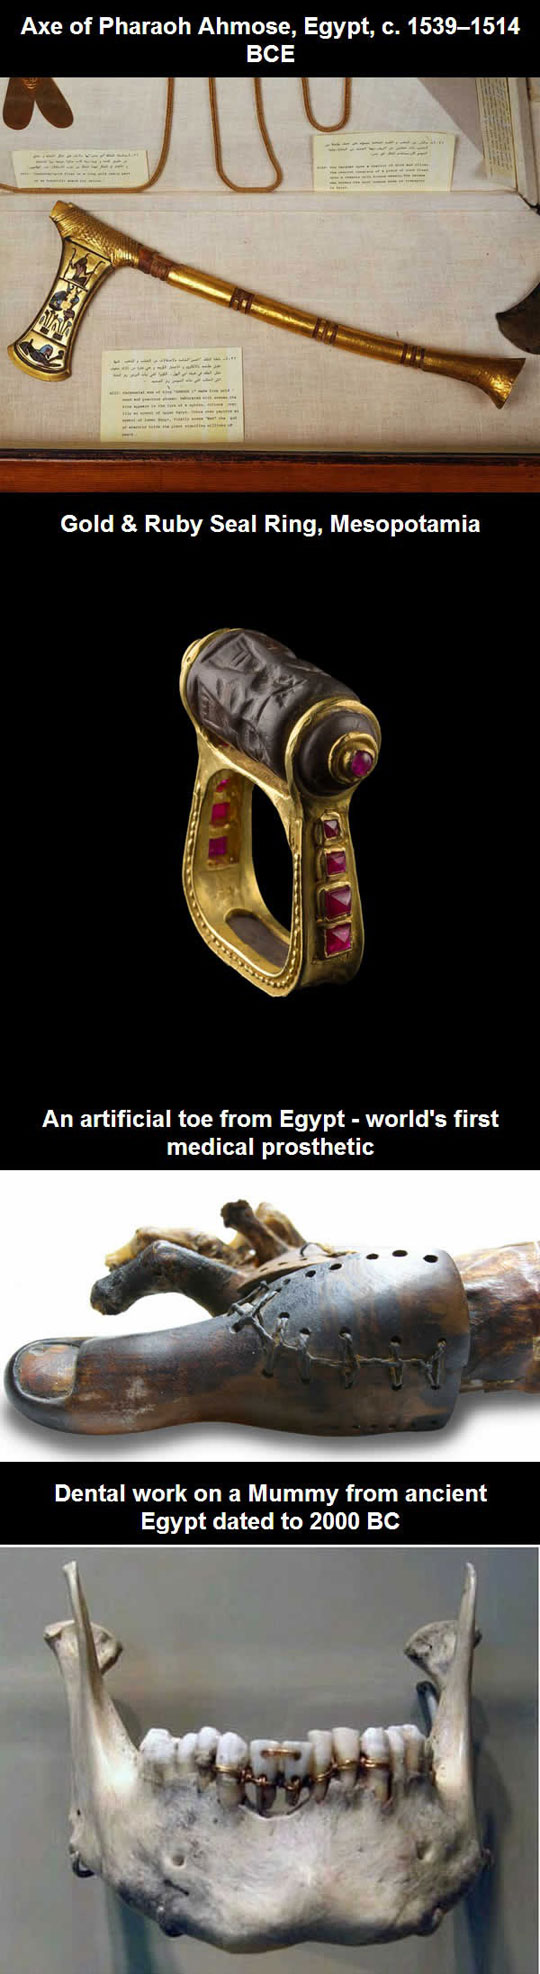 cool-history-objects-important-humanity